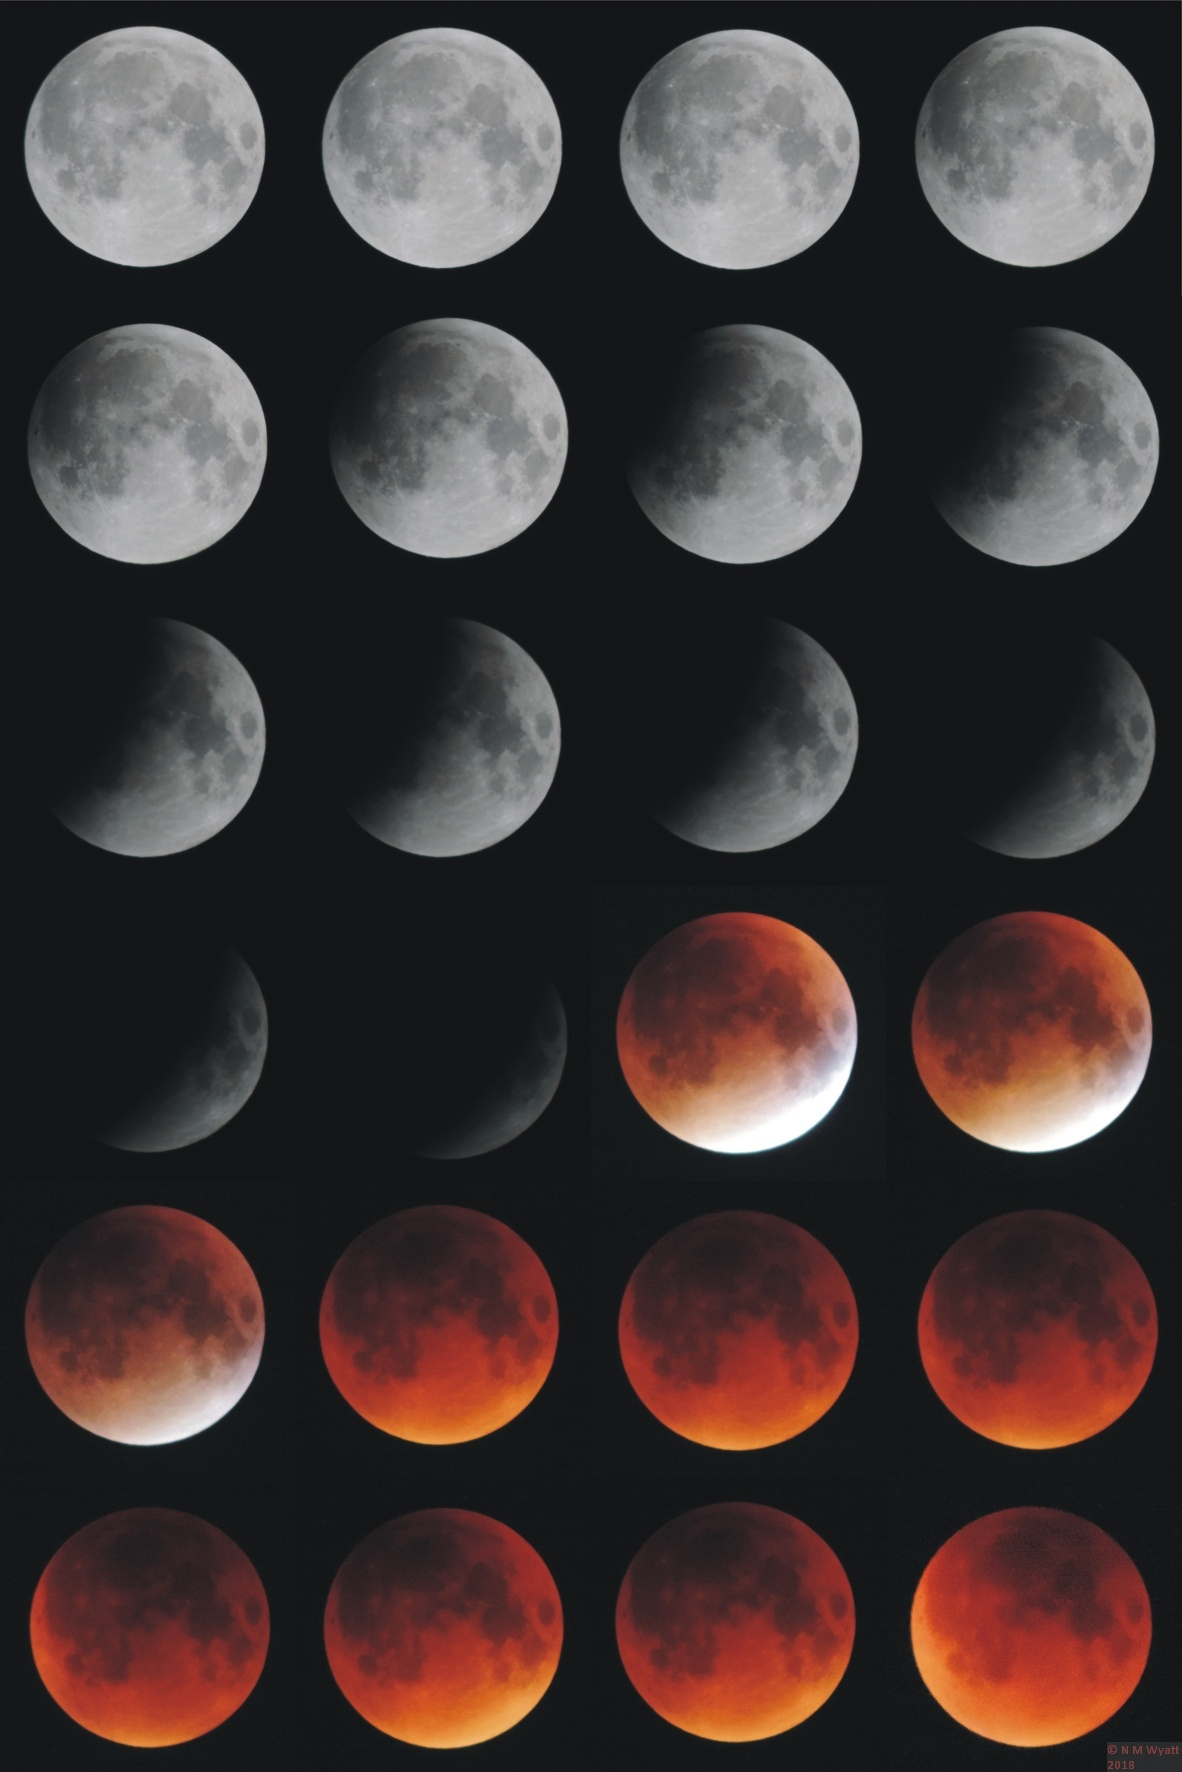 Composite mosaic following the progress of the September 2015 total Lunar Eclipse